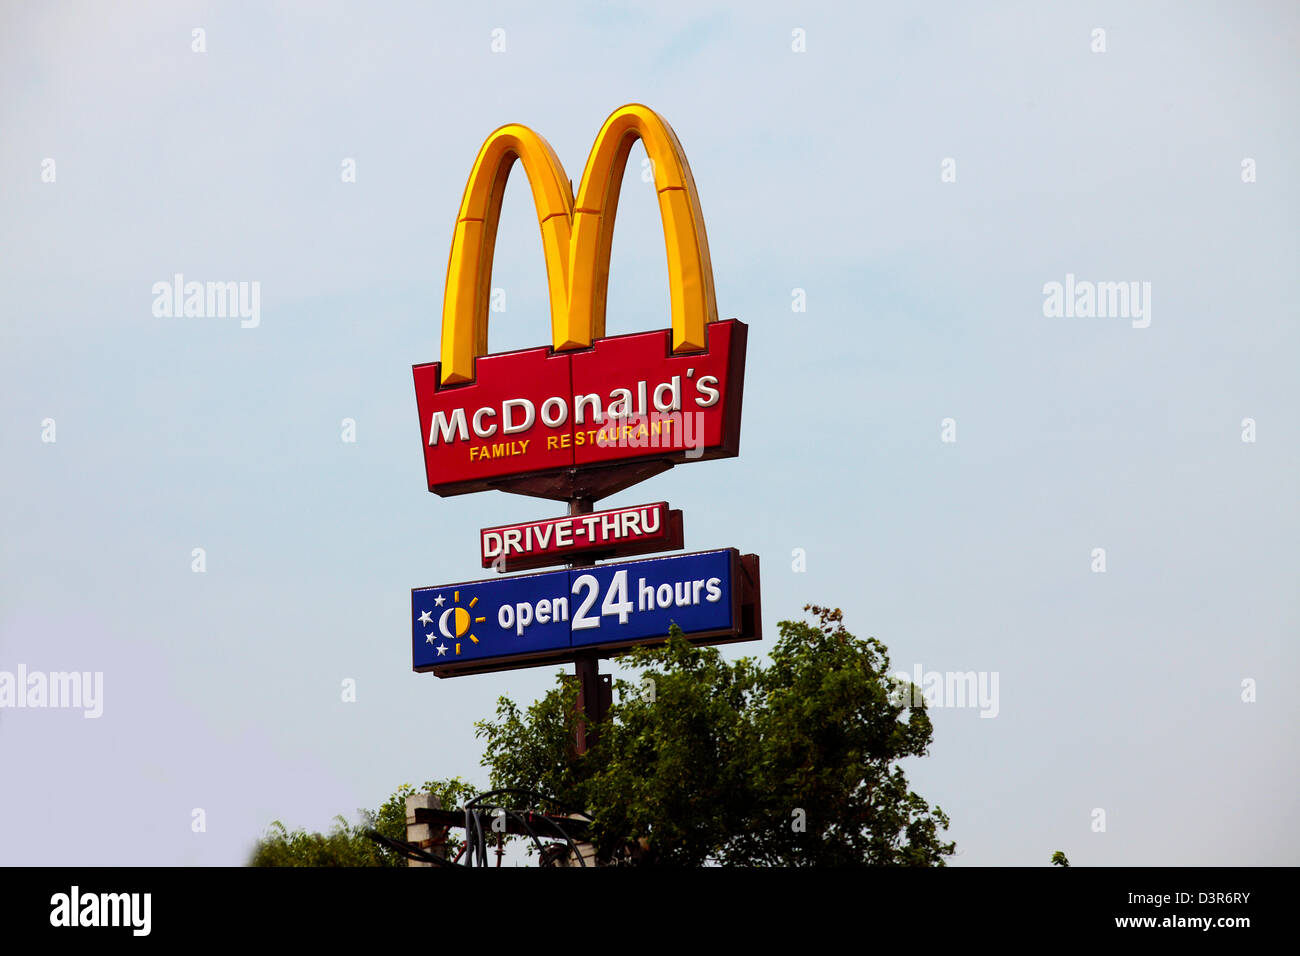 McDonald's Store at a highway - Stock Image